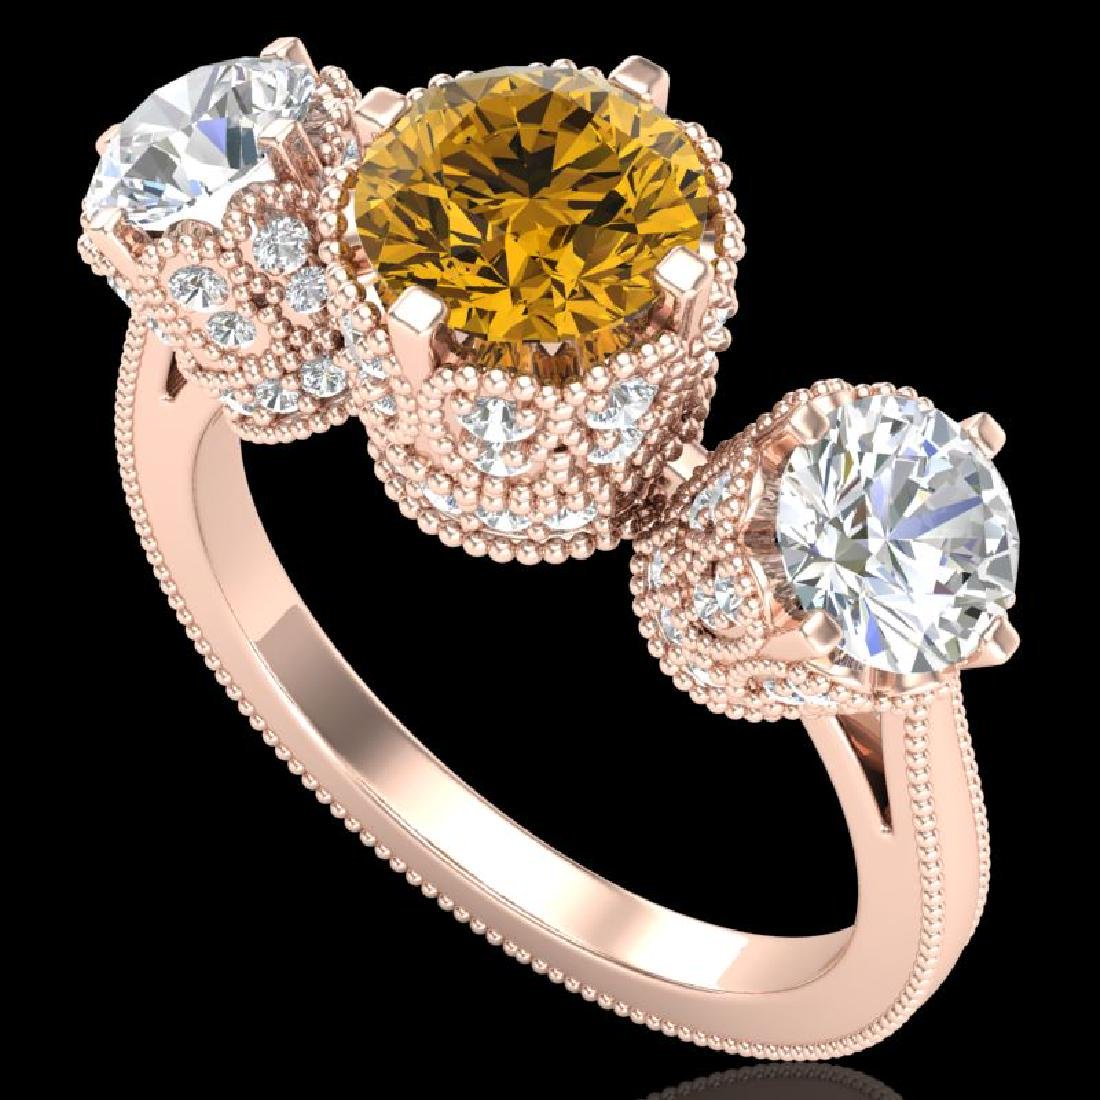 3.06 CTW Intense Fancy Yellow Diamond Art Deco 3 Stone